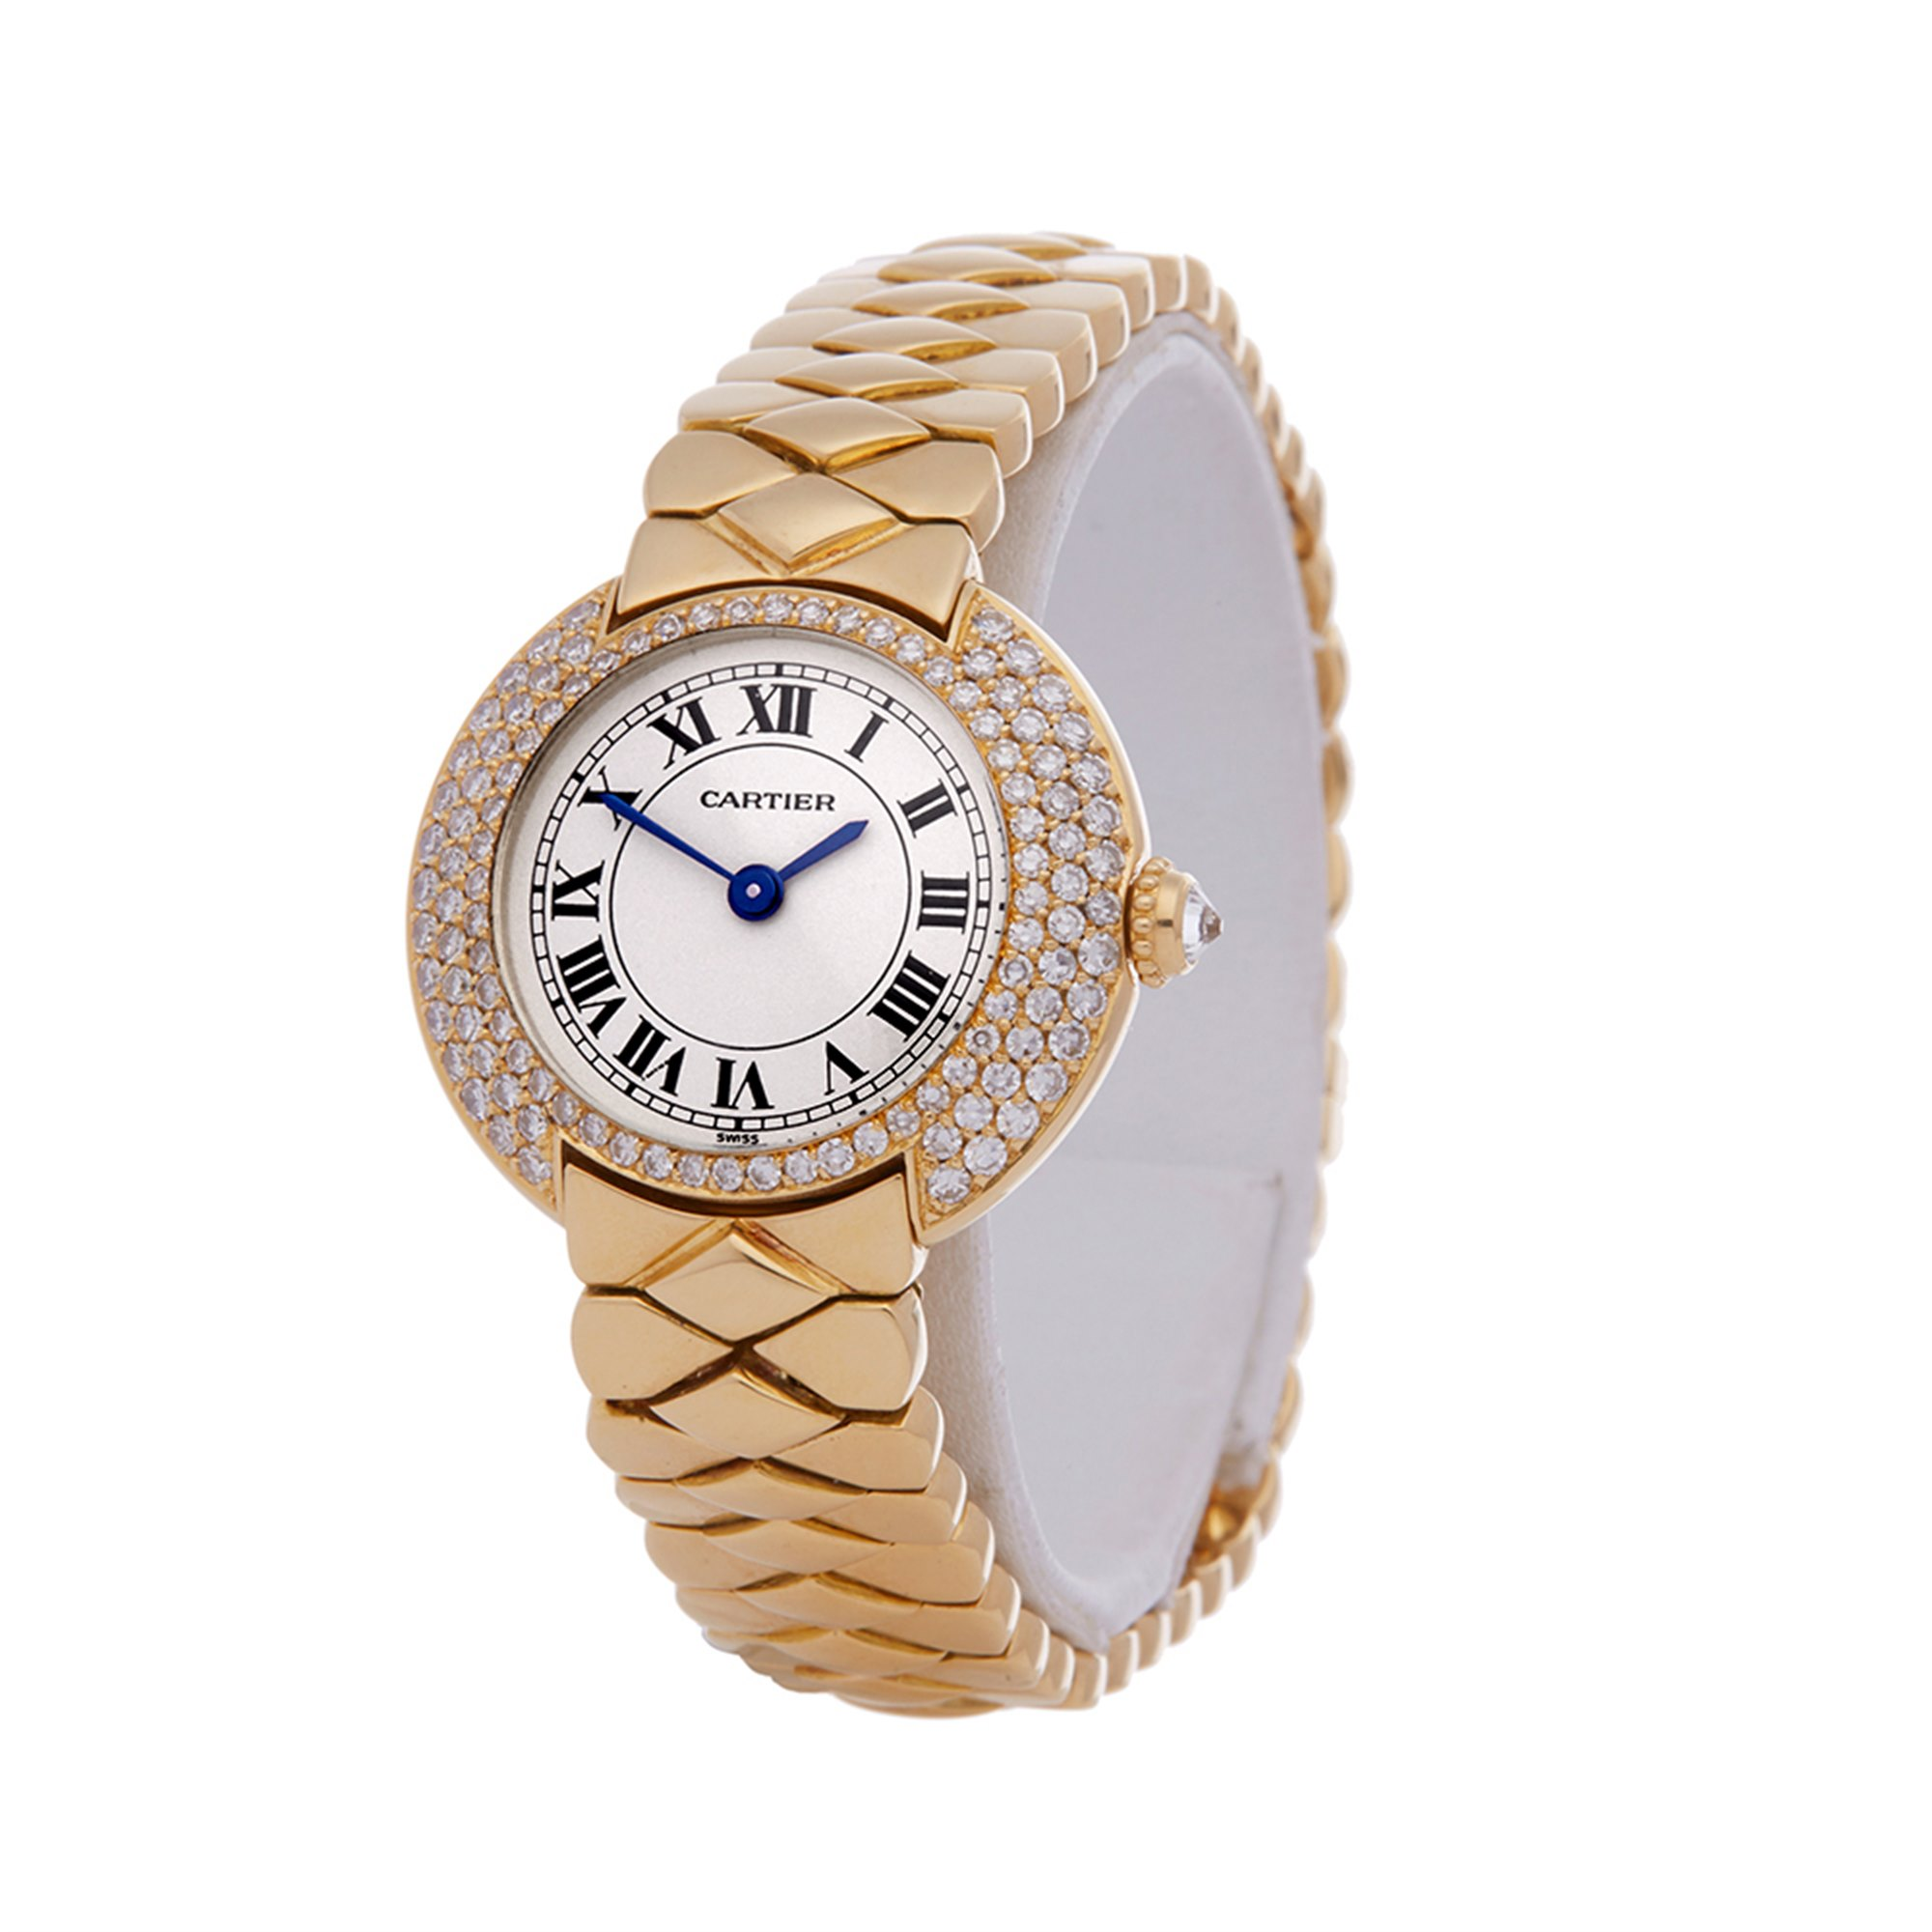 Cartier Vendome Diamond 18k Yellow Gold 1292